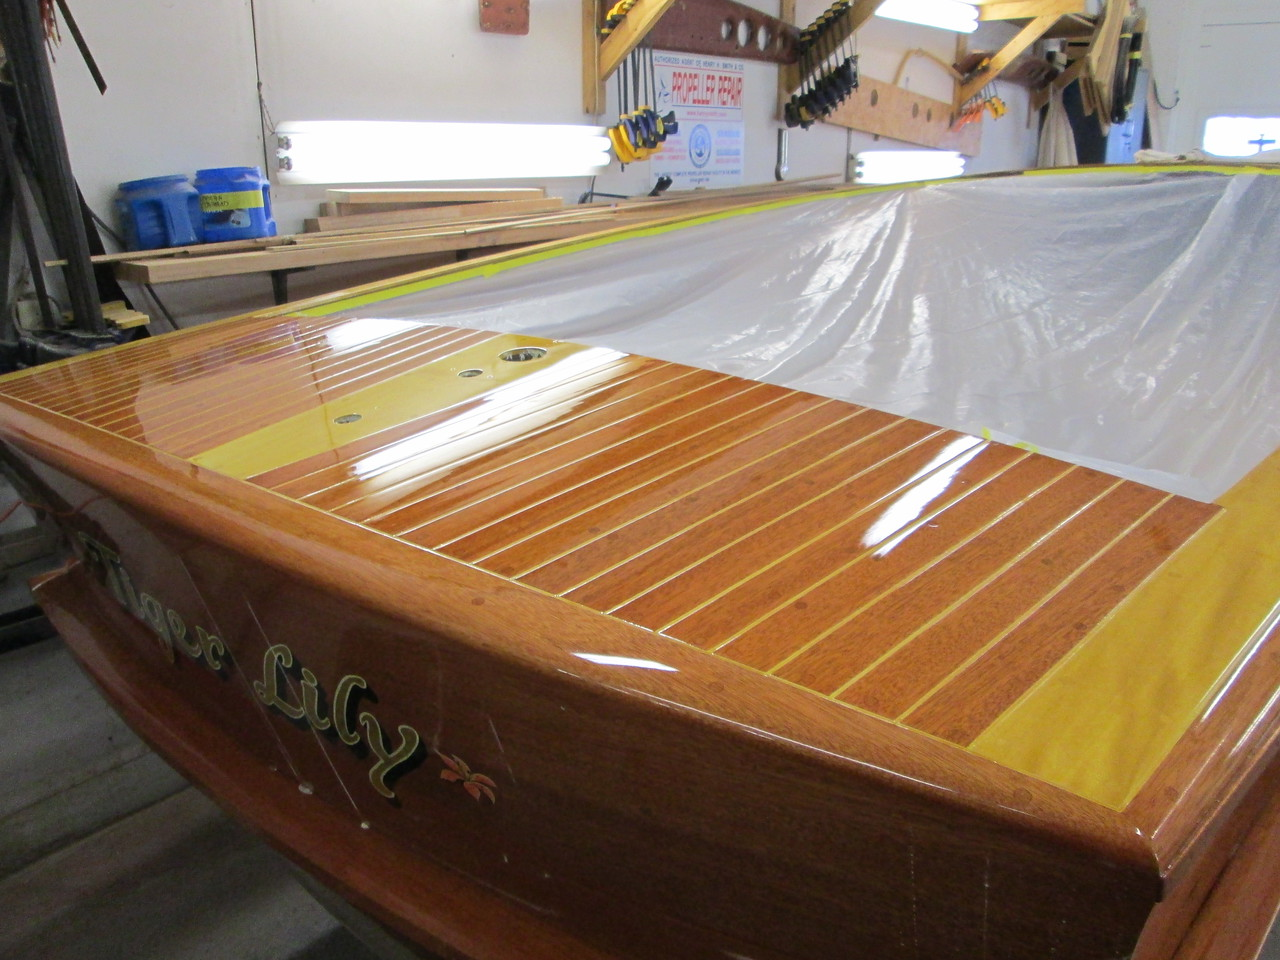 Another view of the rear deck after being sanded and buffed.